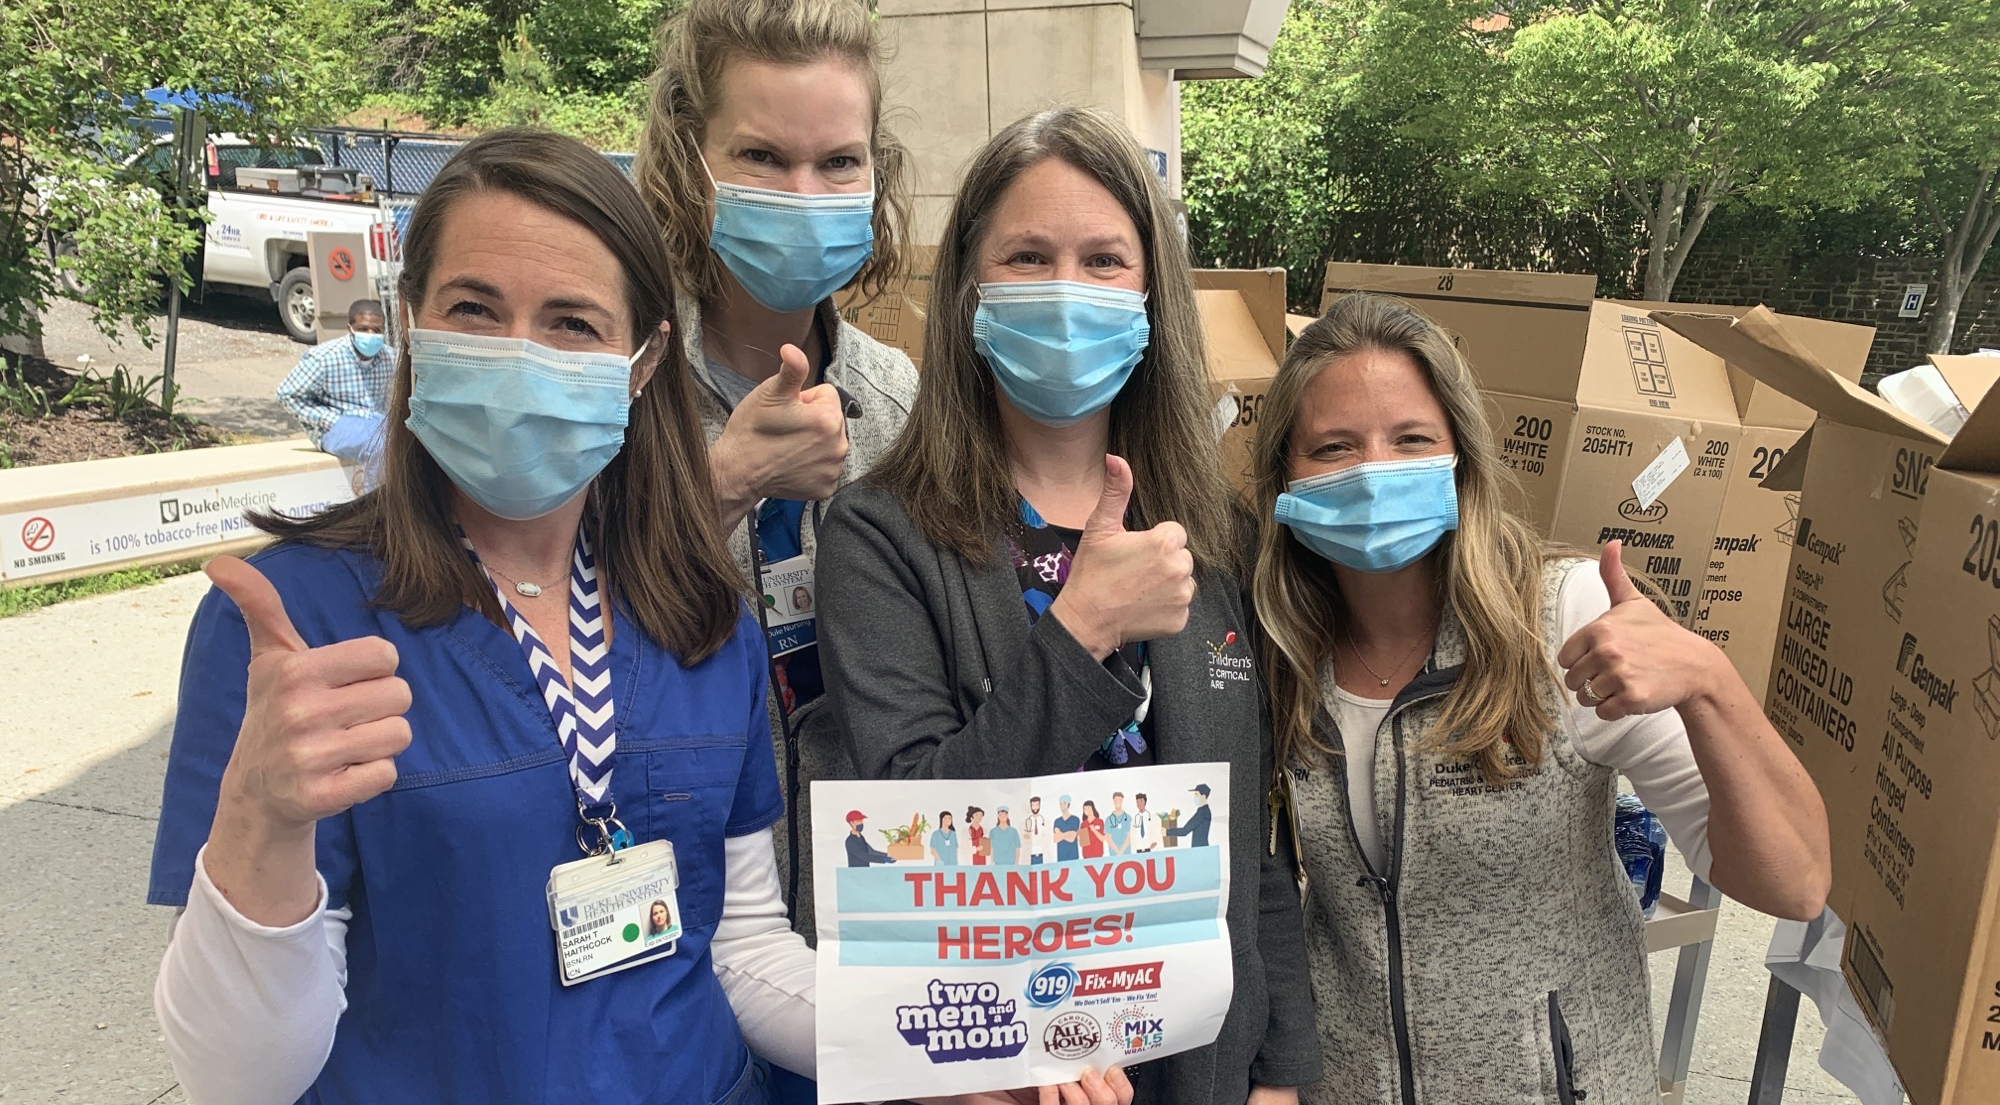 A group of masked nurses holding a sign give a thumbs up